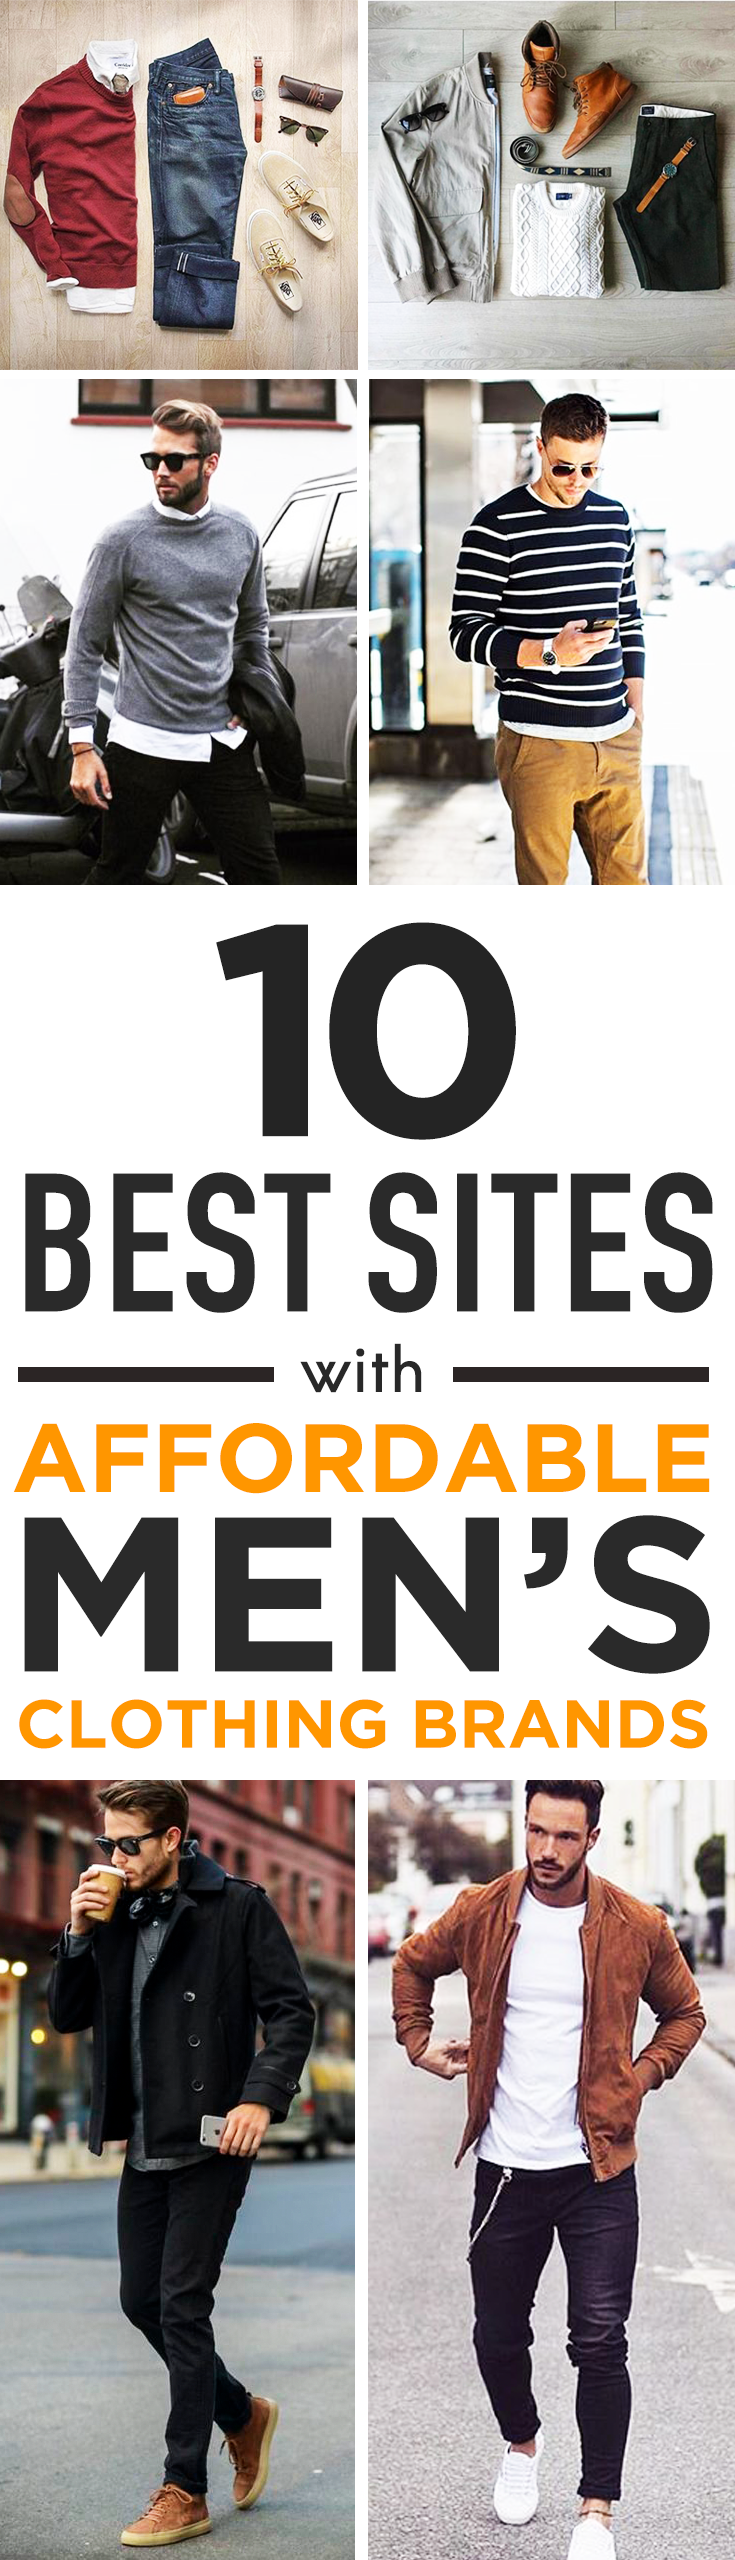 7fdb12d12e3 10 Best sites with affordable men s clothing brands. The top websites for affordable  mens clothing stores and brands. These online shops offer inexpensive